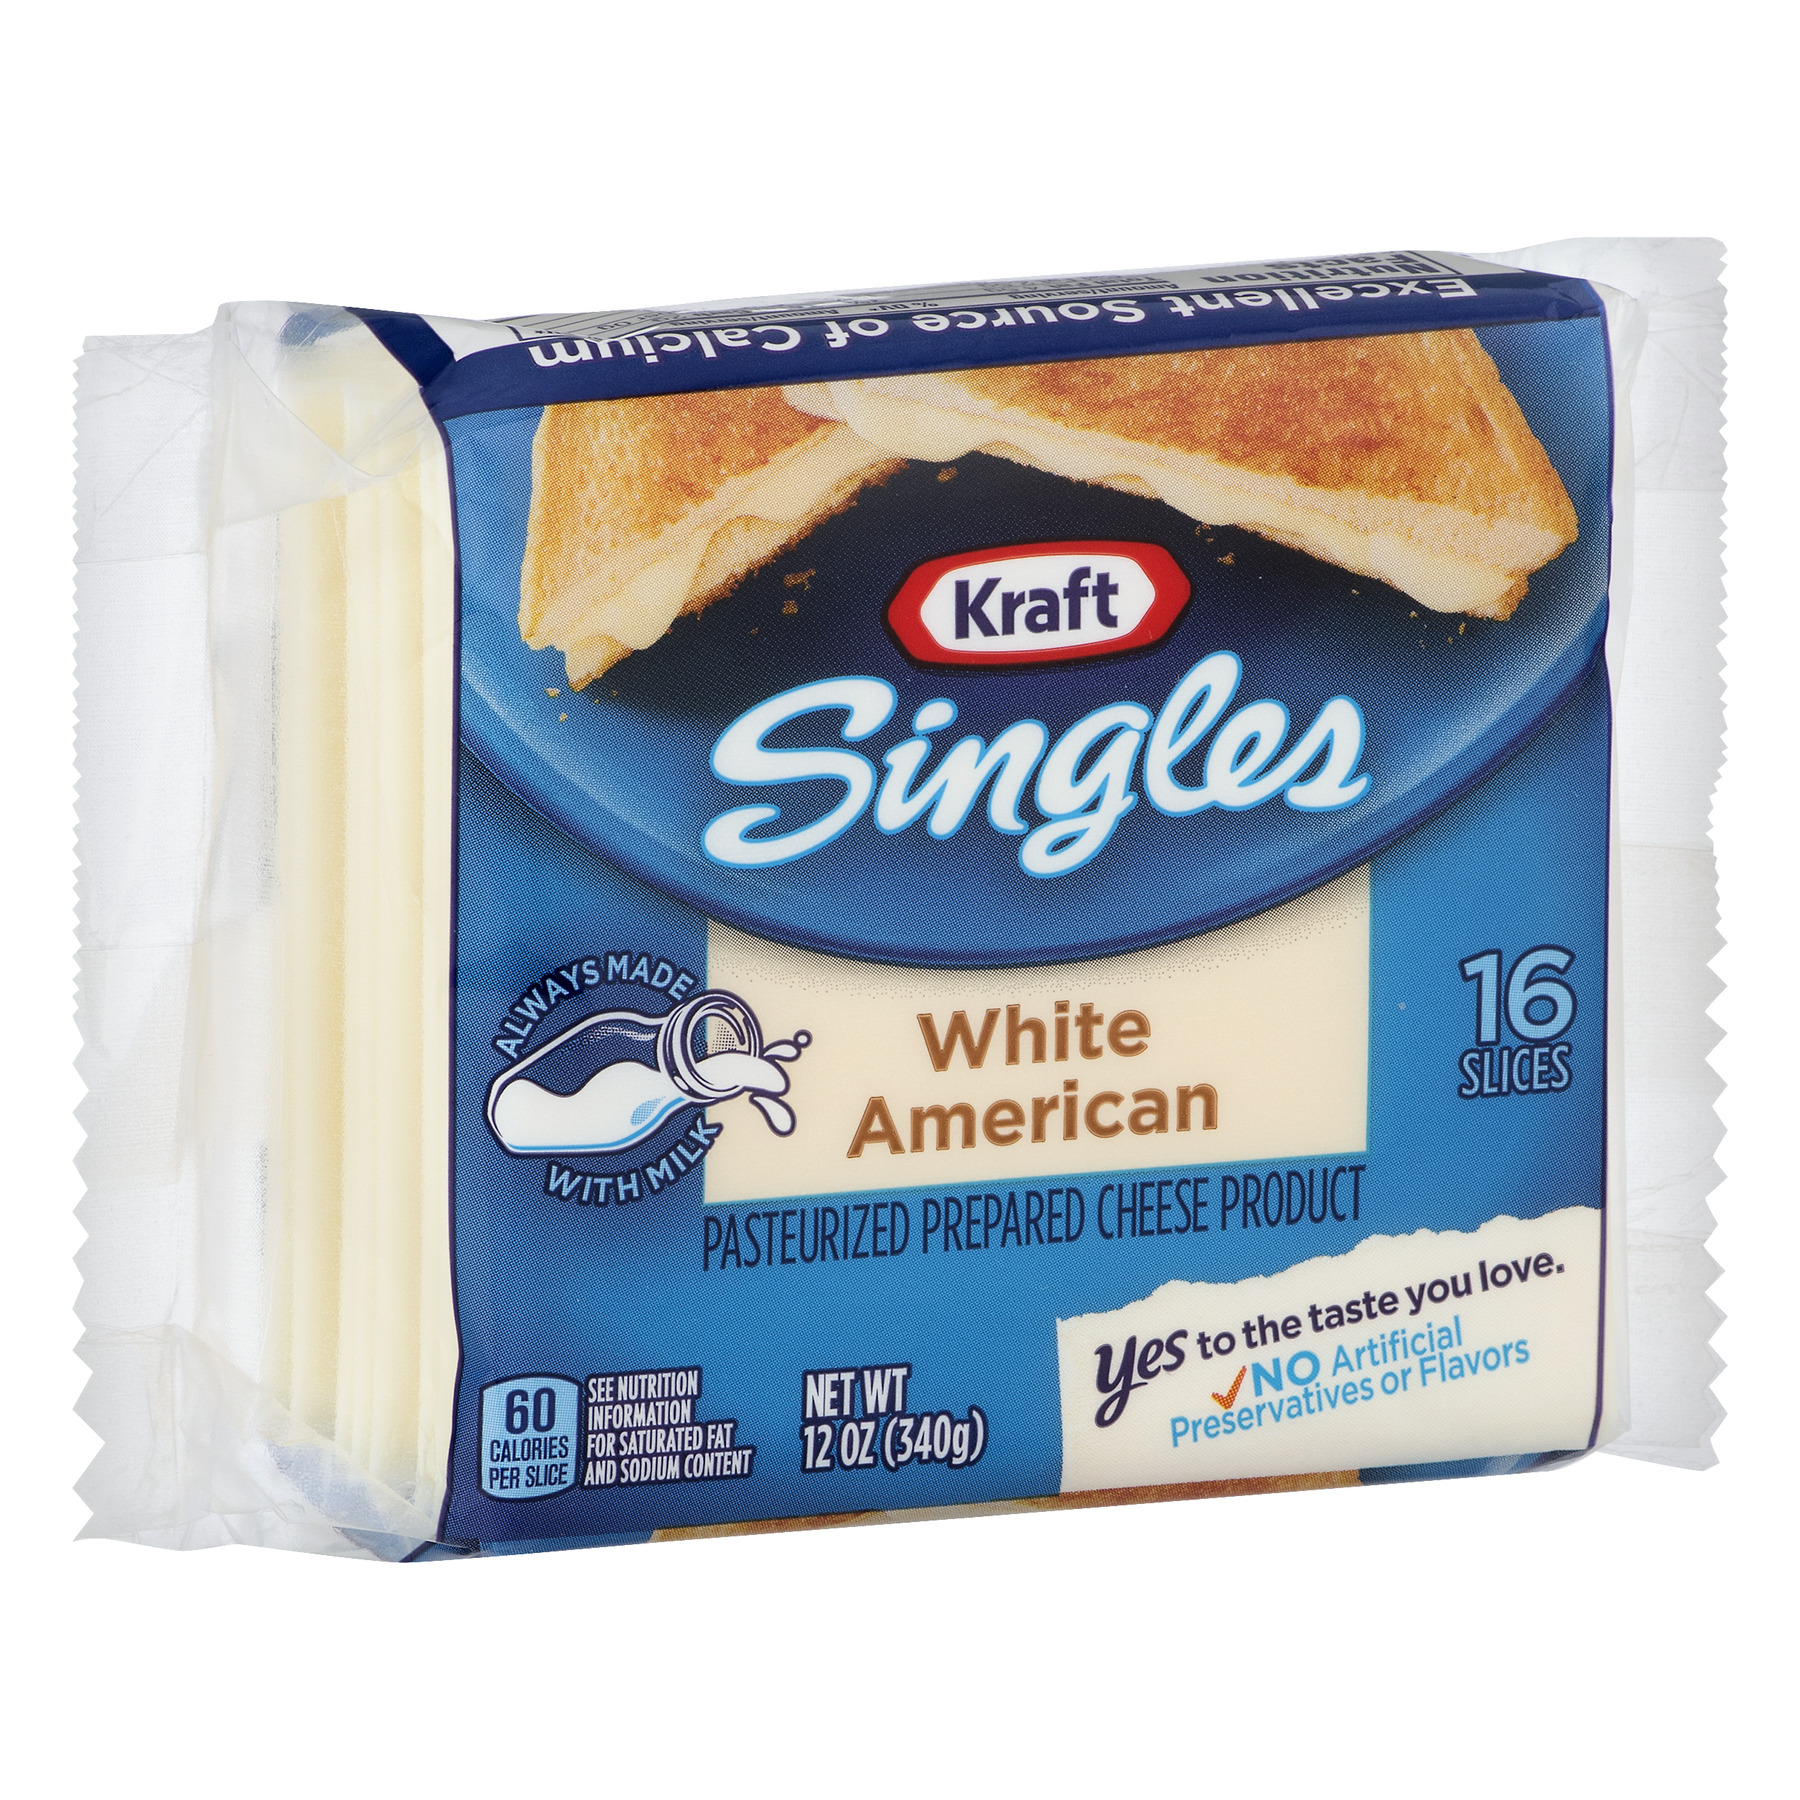 calories in white american cheese